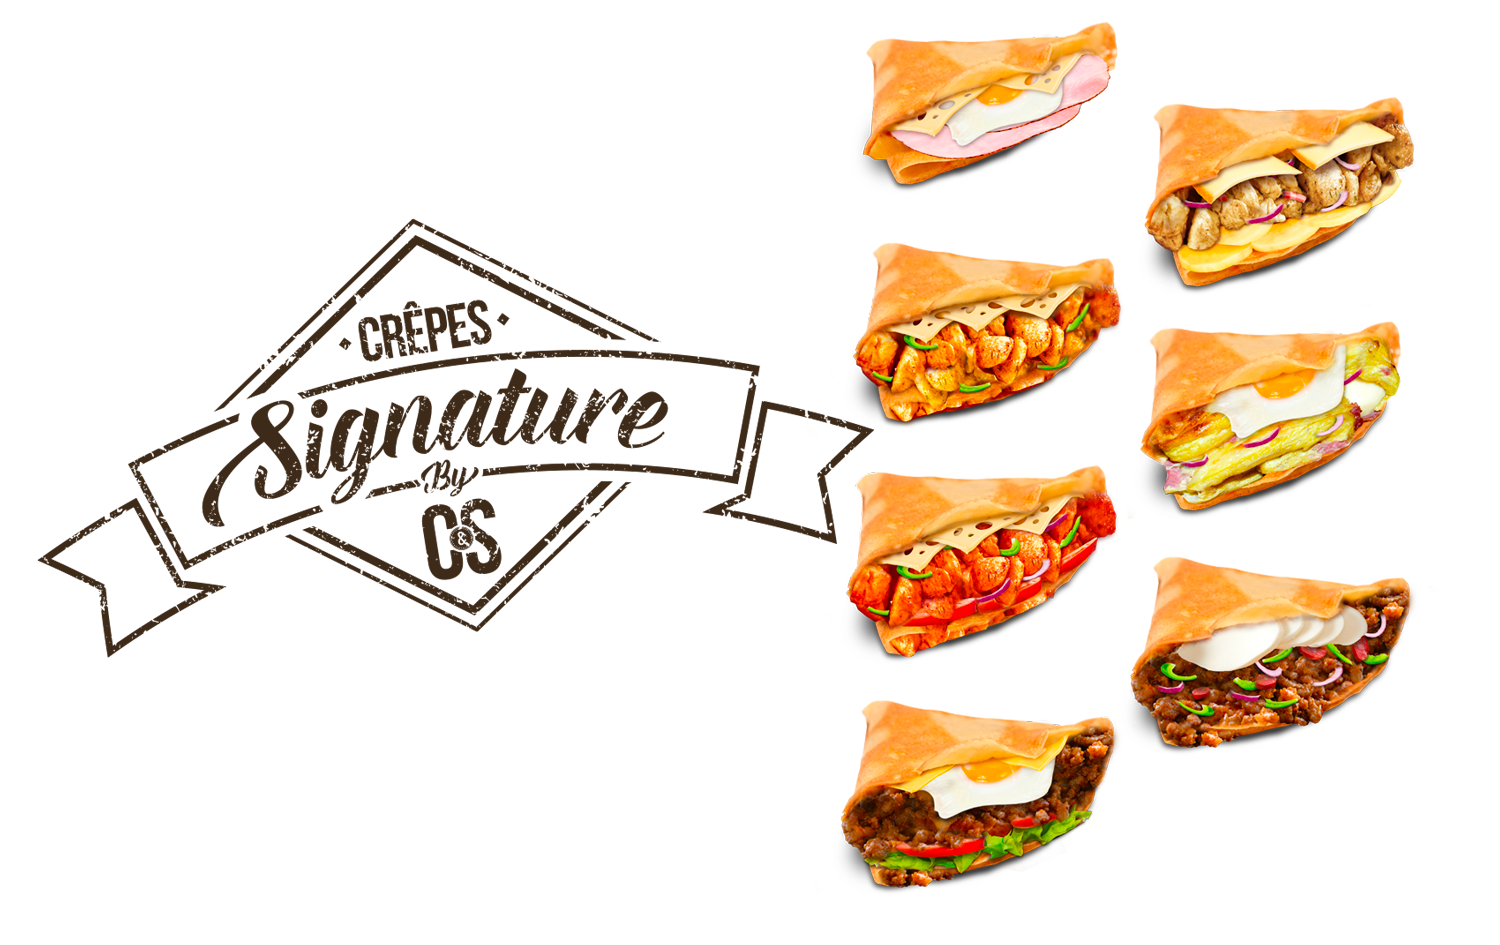 Crepes Signature Homepage